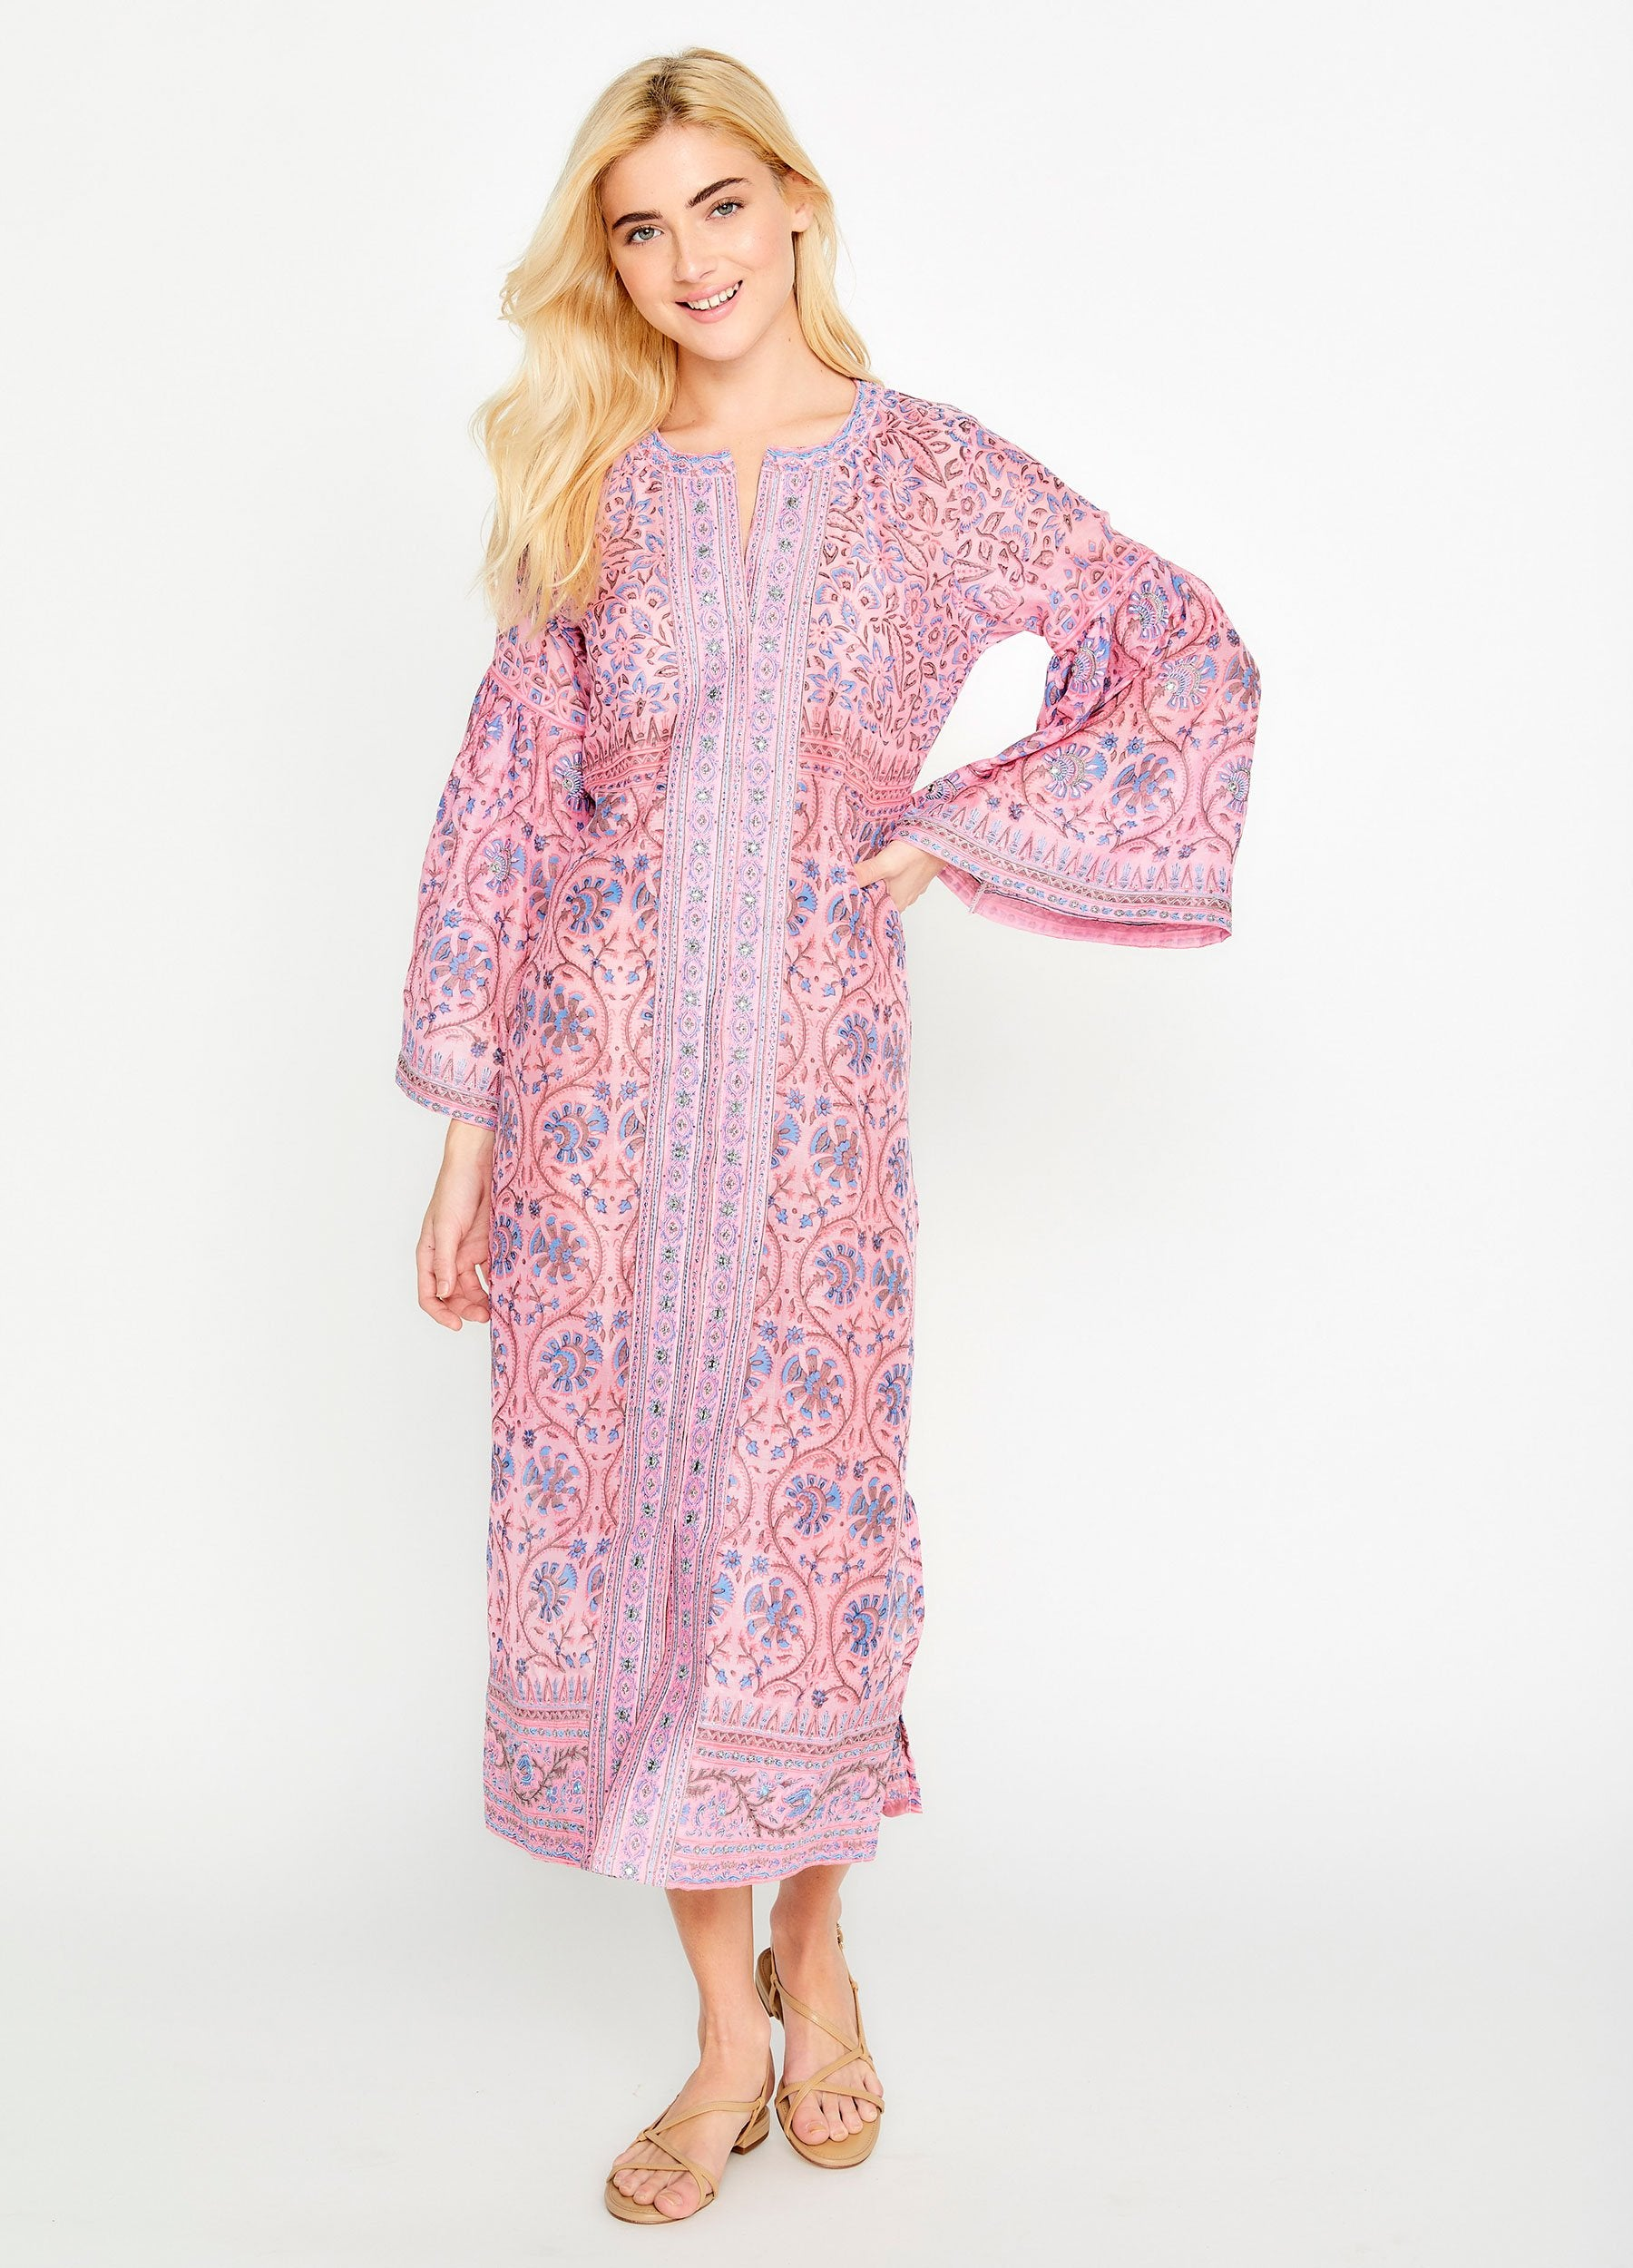 Cora Button Down Caftan